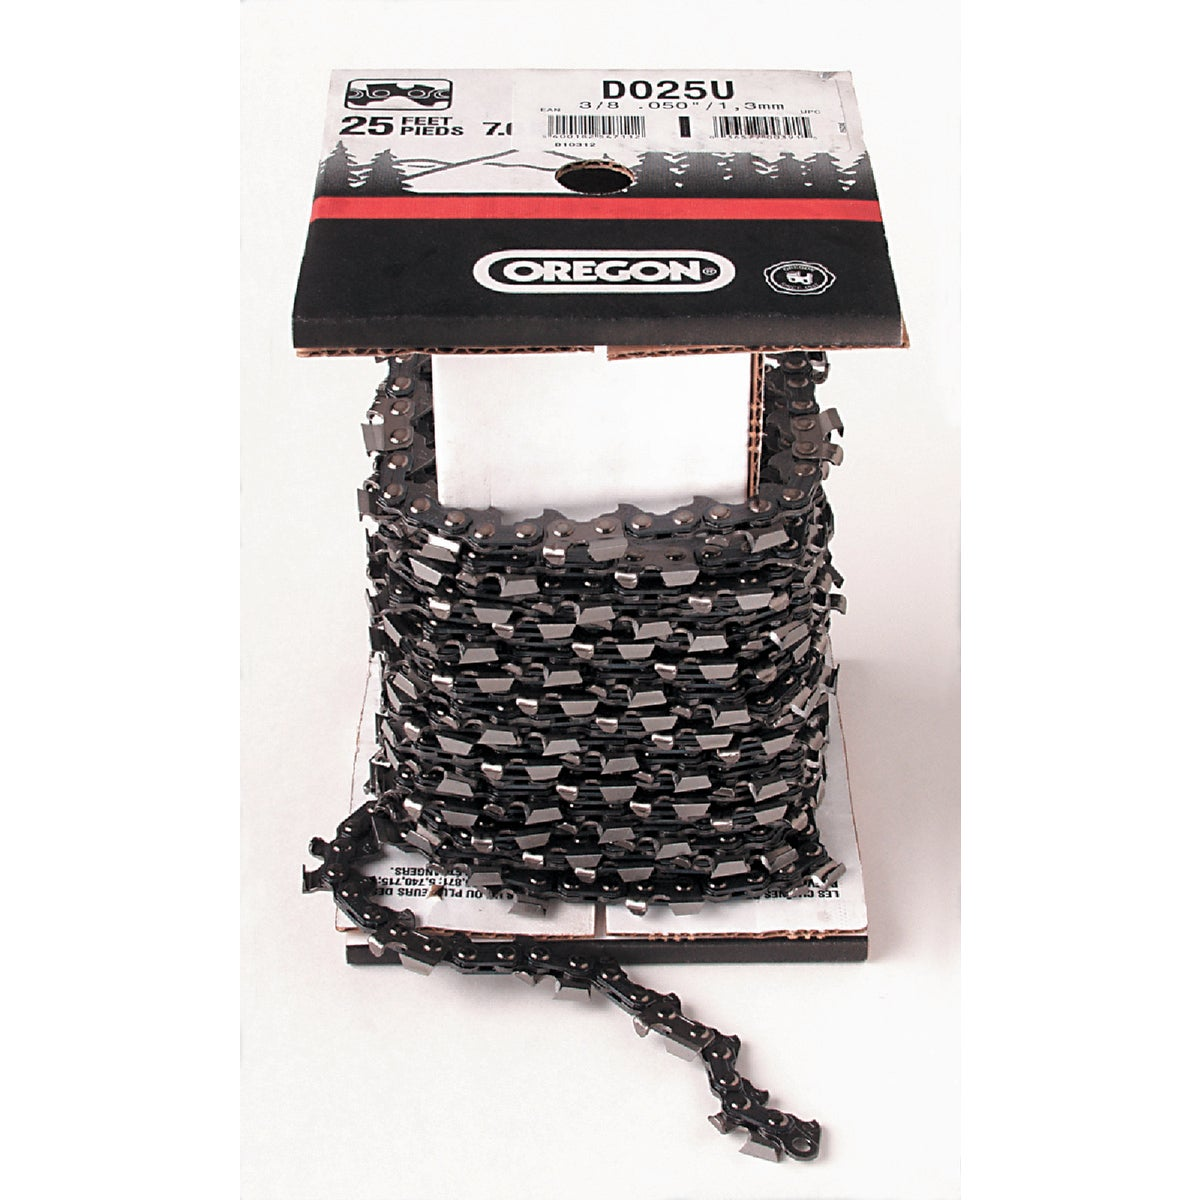 25' REEL BULK SAW CHAIN - D025U by Oregon Cutting Systm